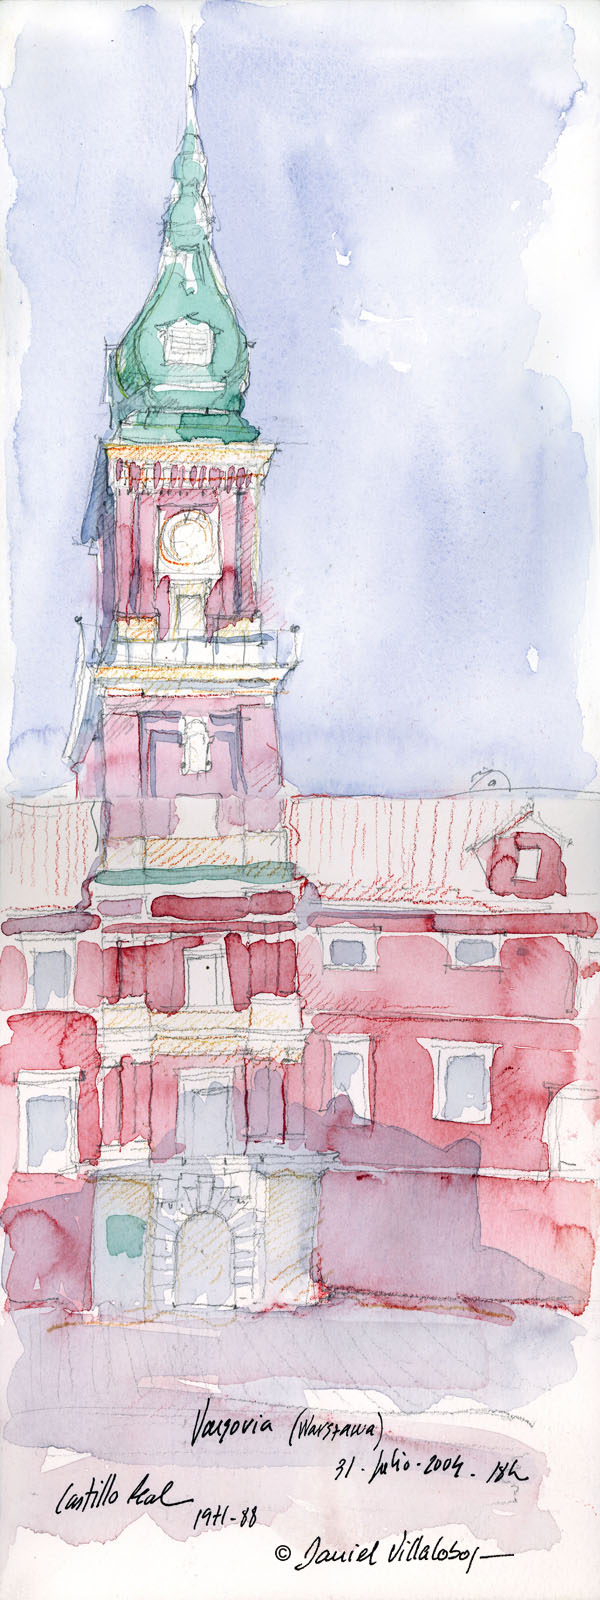 danielvillalobos-architecture-sketchbook-sketch-poland-6